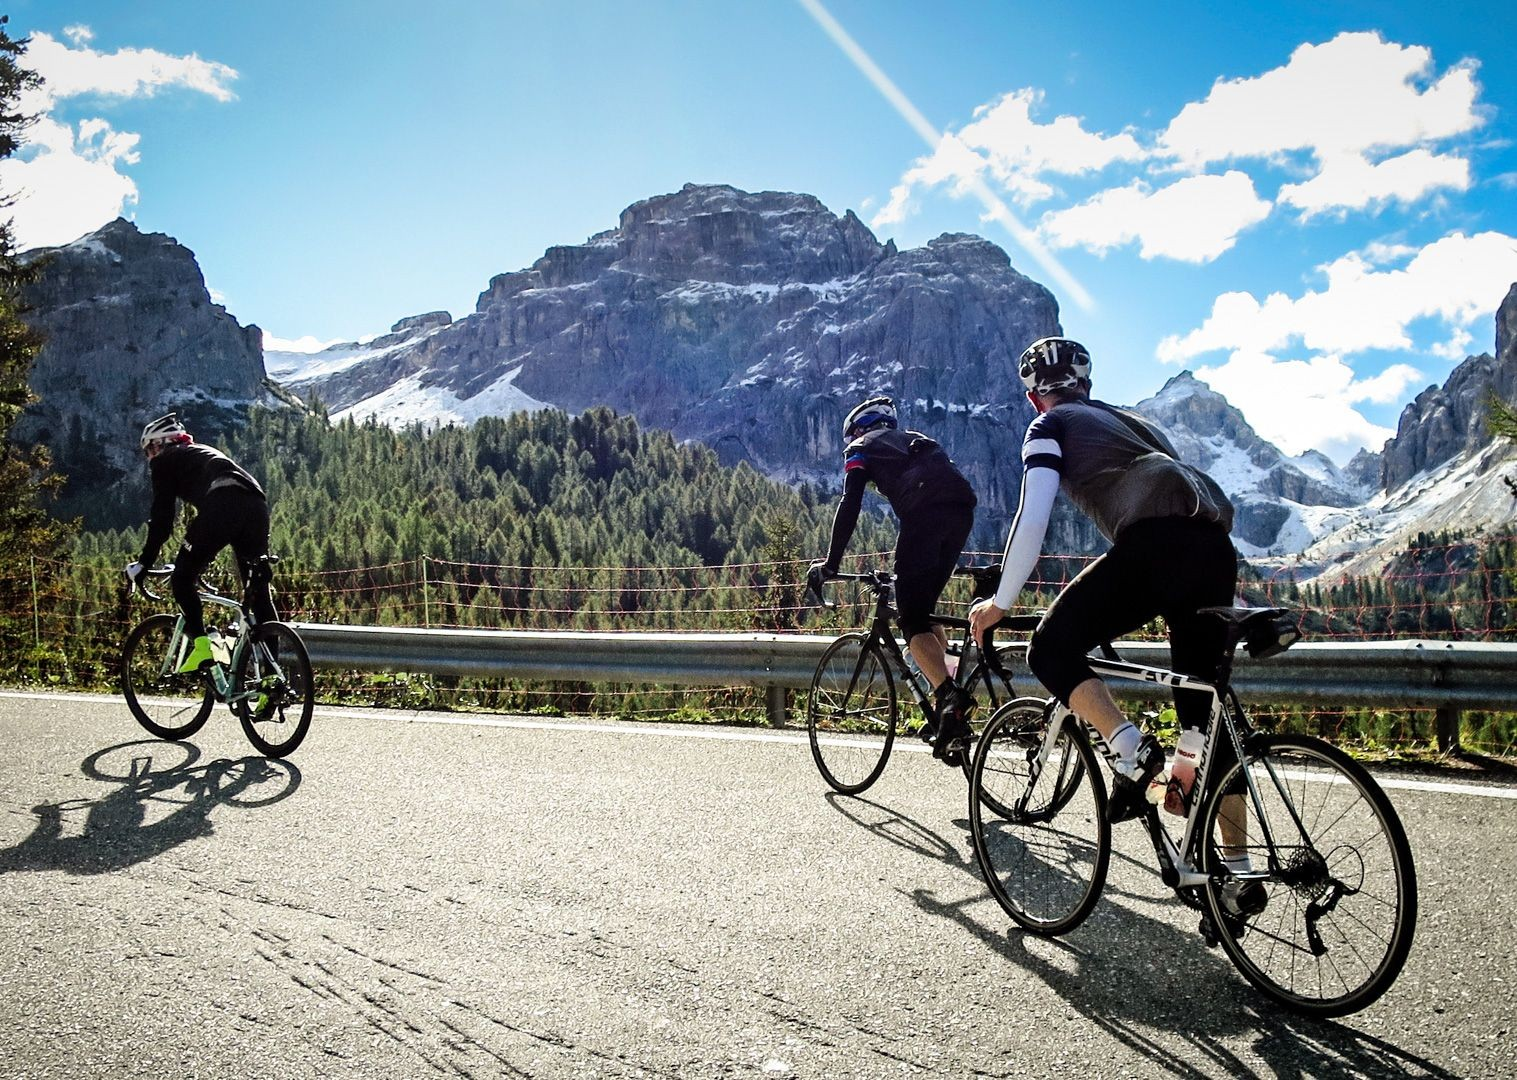 challenging-climbs-italian-dolomites-road-bike-skedaddle.jpg - Italy - Raid Dolomiti - Guided Road Cycling Holiday - Italia Road Cycling